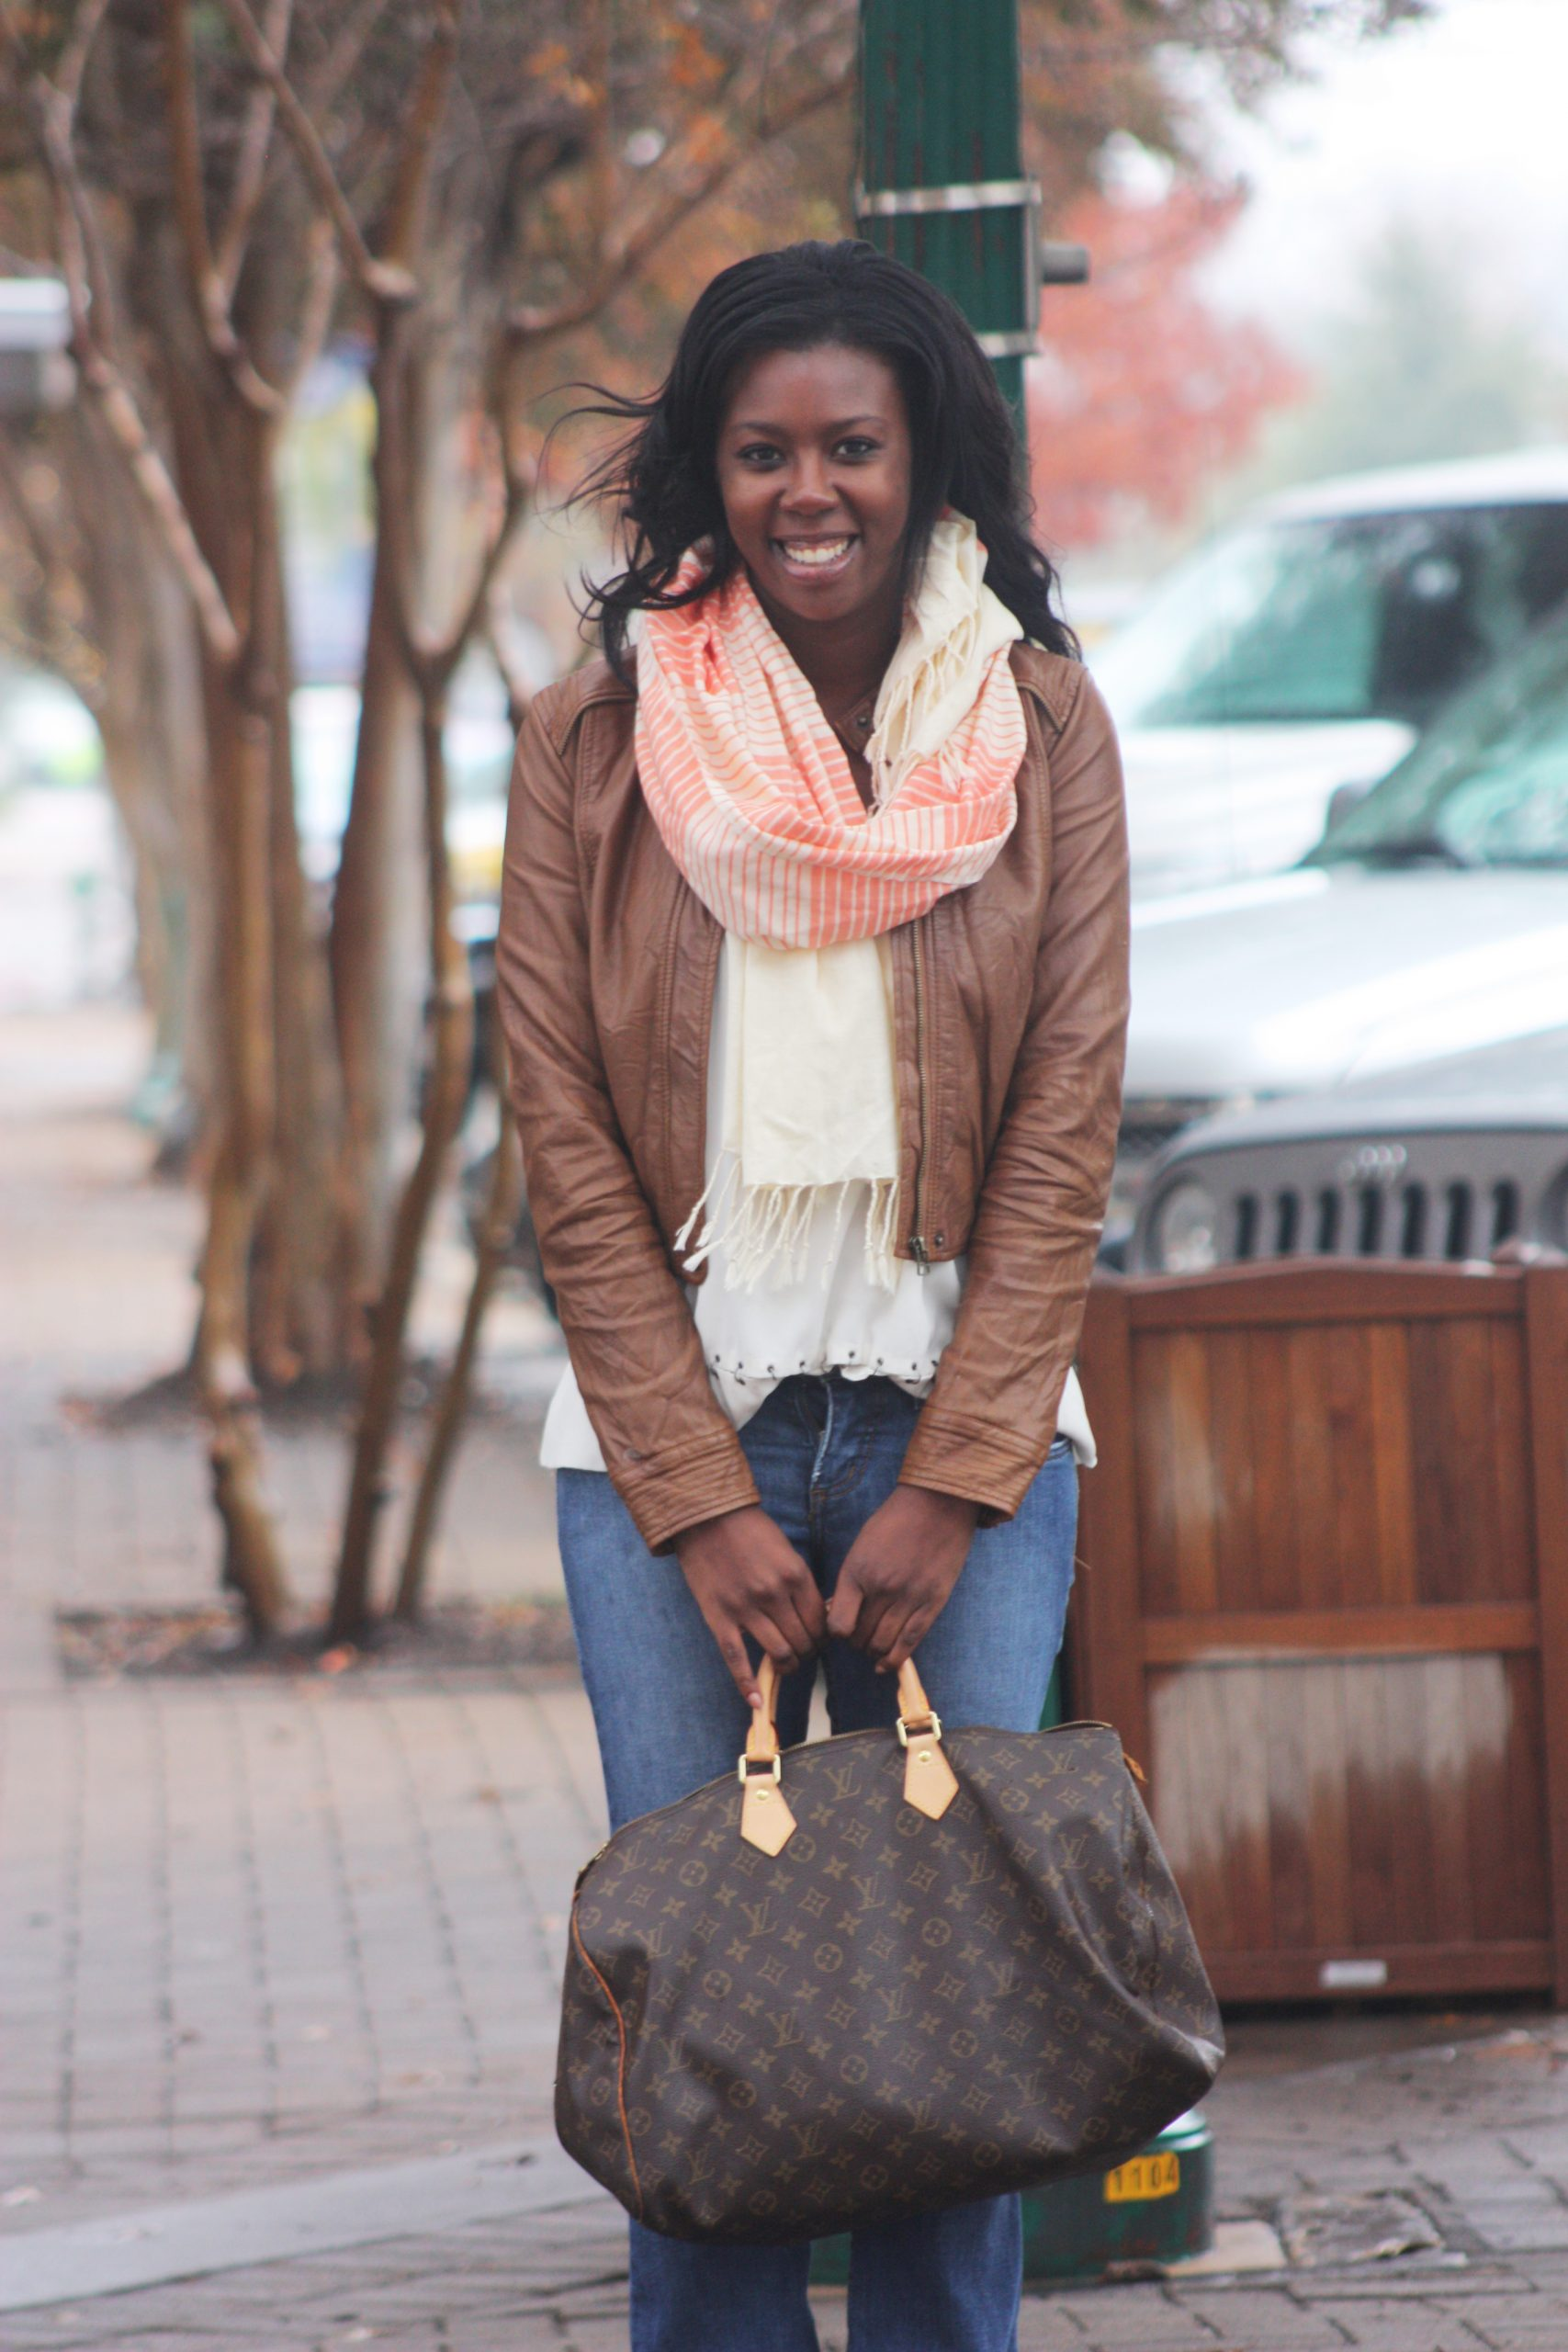 Tasha in Krama Wheel Scarf, Gianni Bini Blouse, Juicy Couture jeans, Vintage Louis Vuitton Speedy and Marco Santi Booties